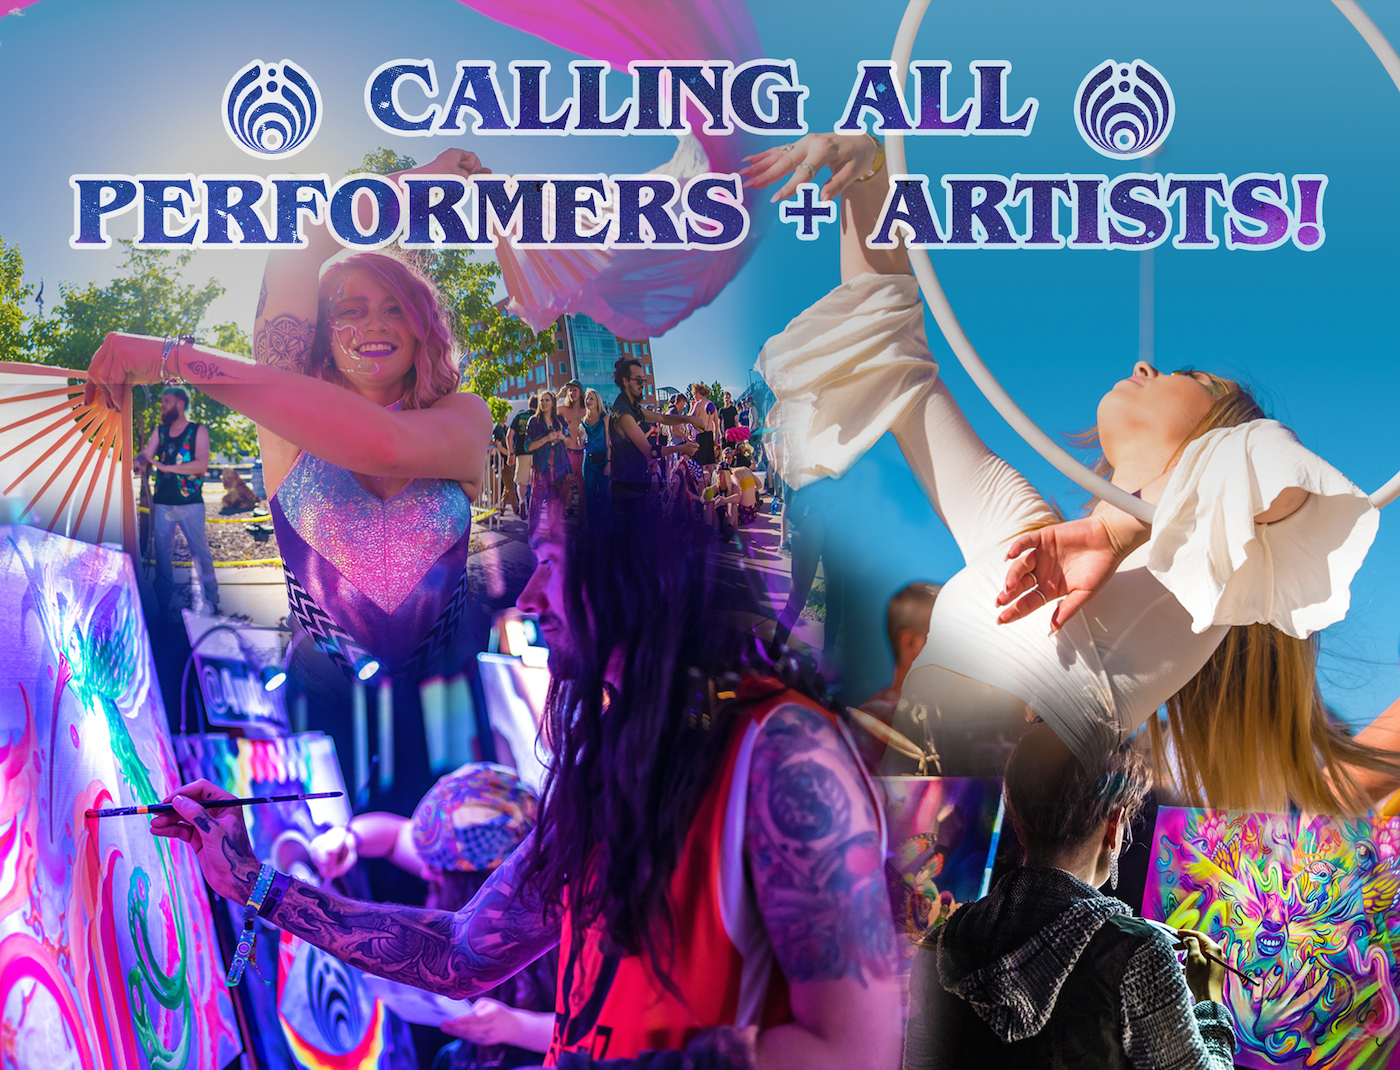 Bass Center XI Art and Performance Applications